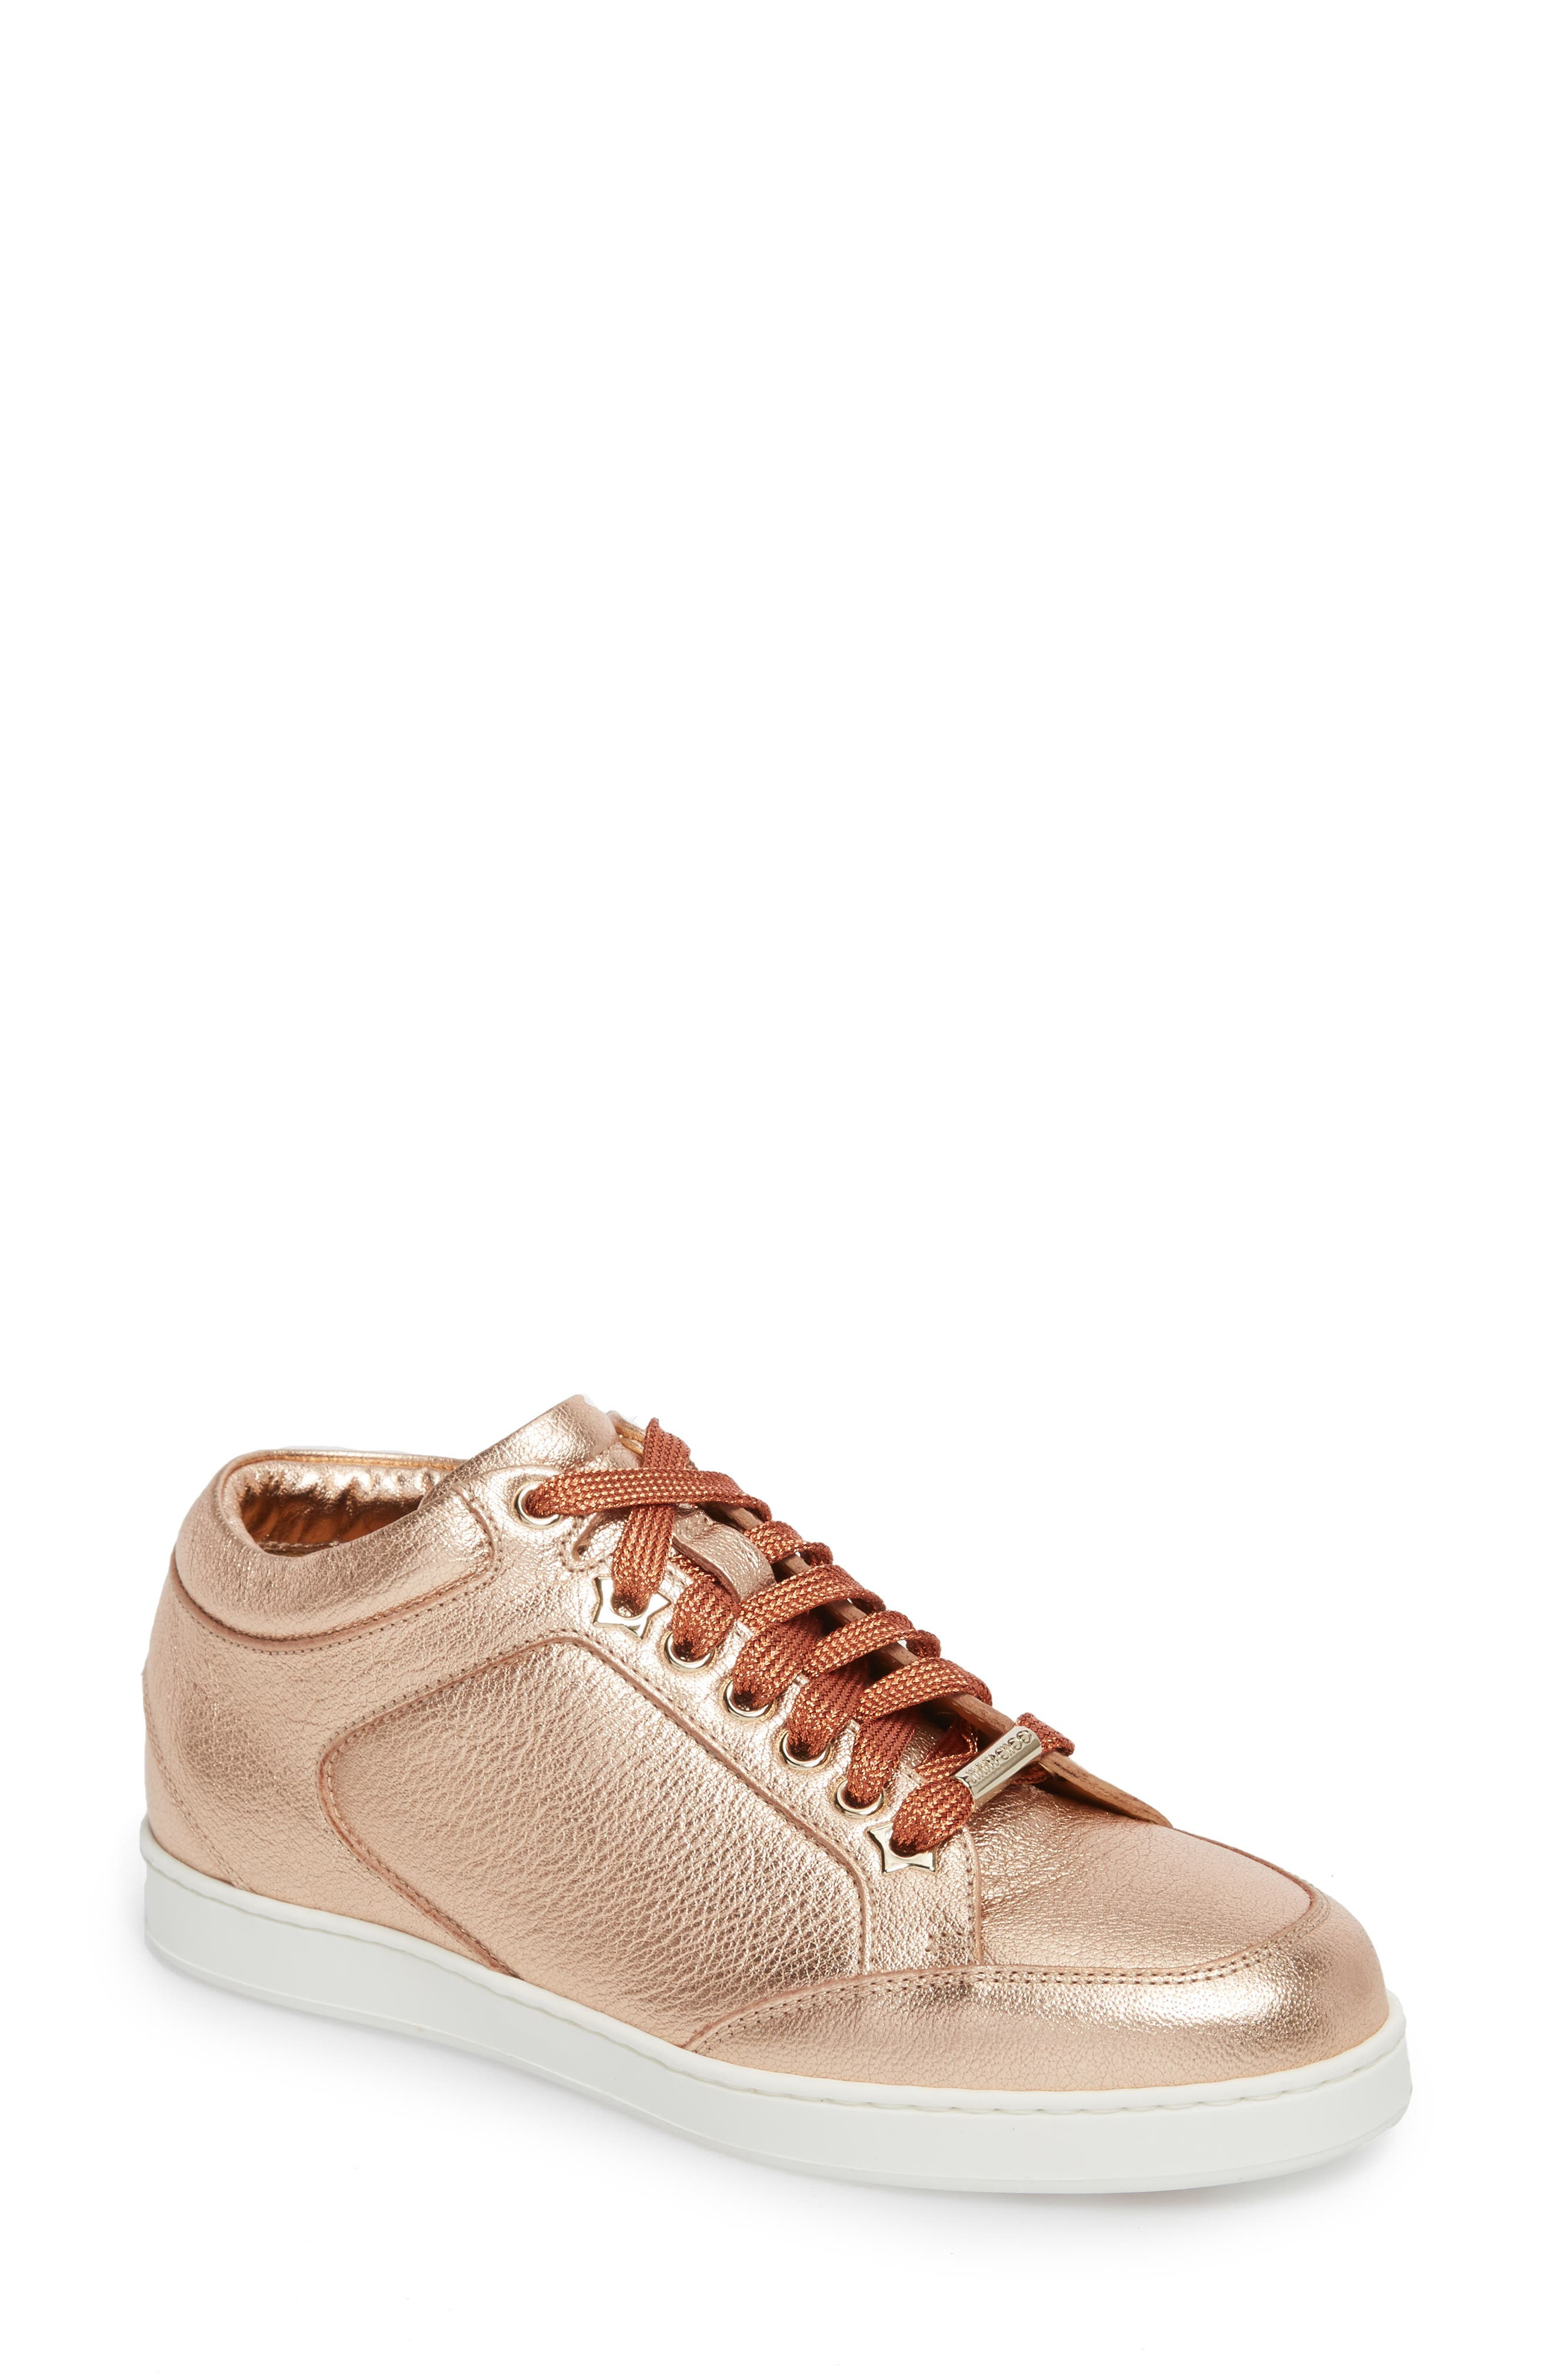 Miami Metallic Sneaker,                             Main thumbnail 1, color,                             680